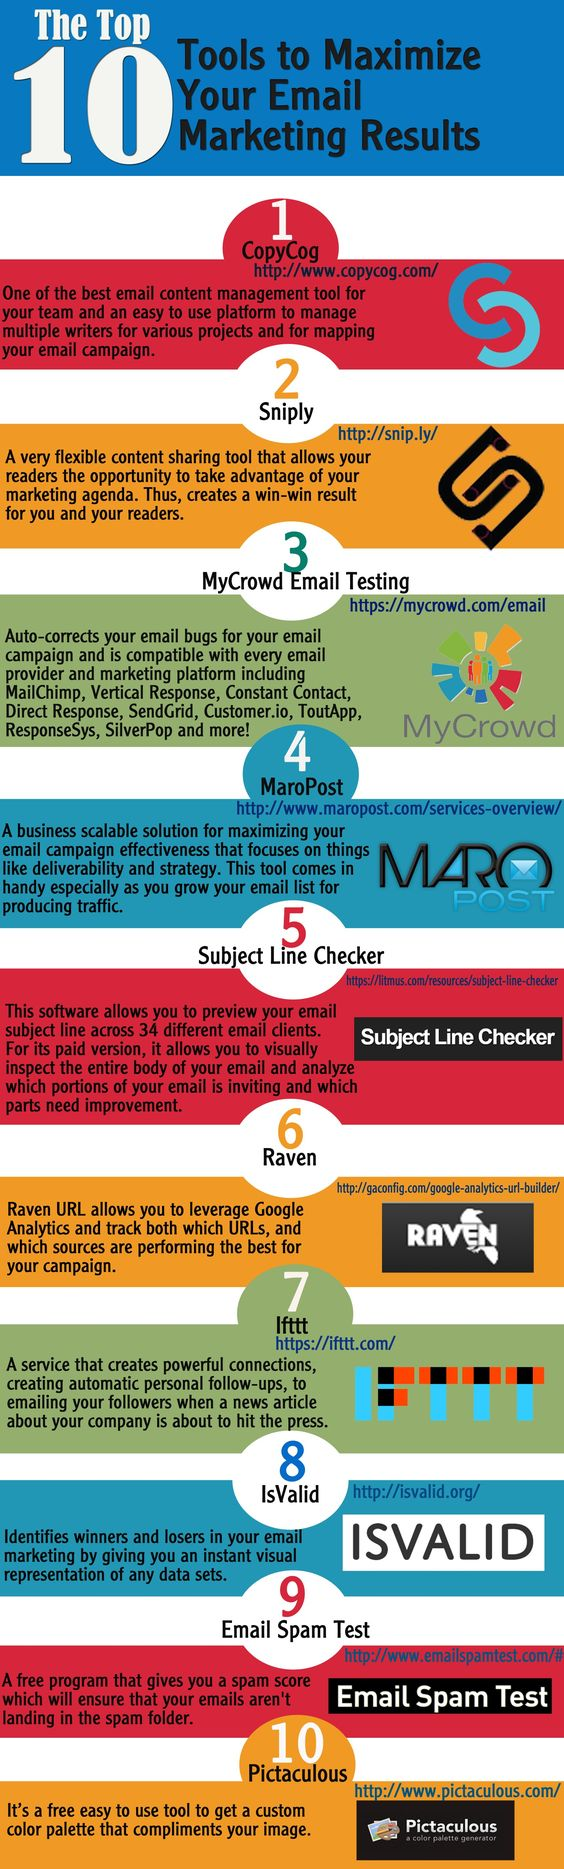 The Top 10 Tools to Maximize Your Email Marketing Results | 007 ...